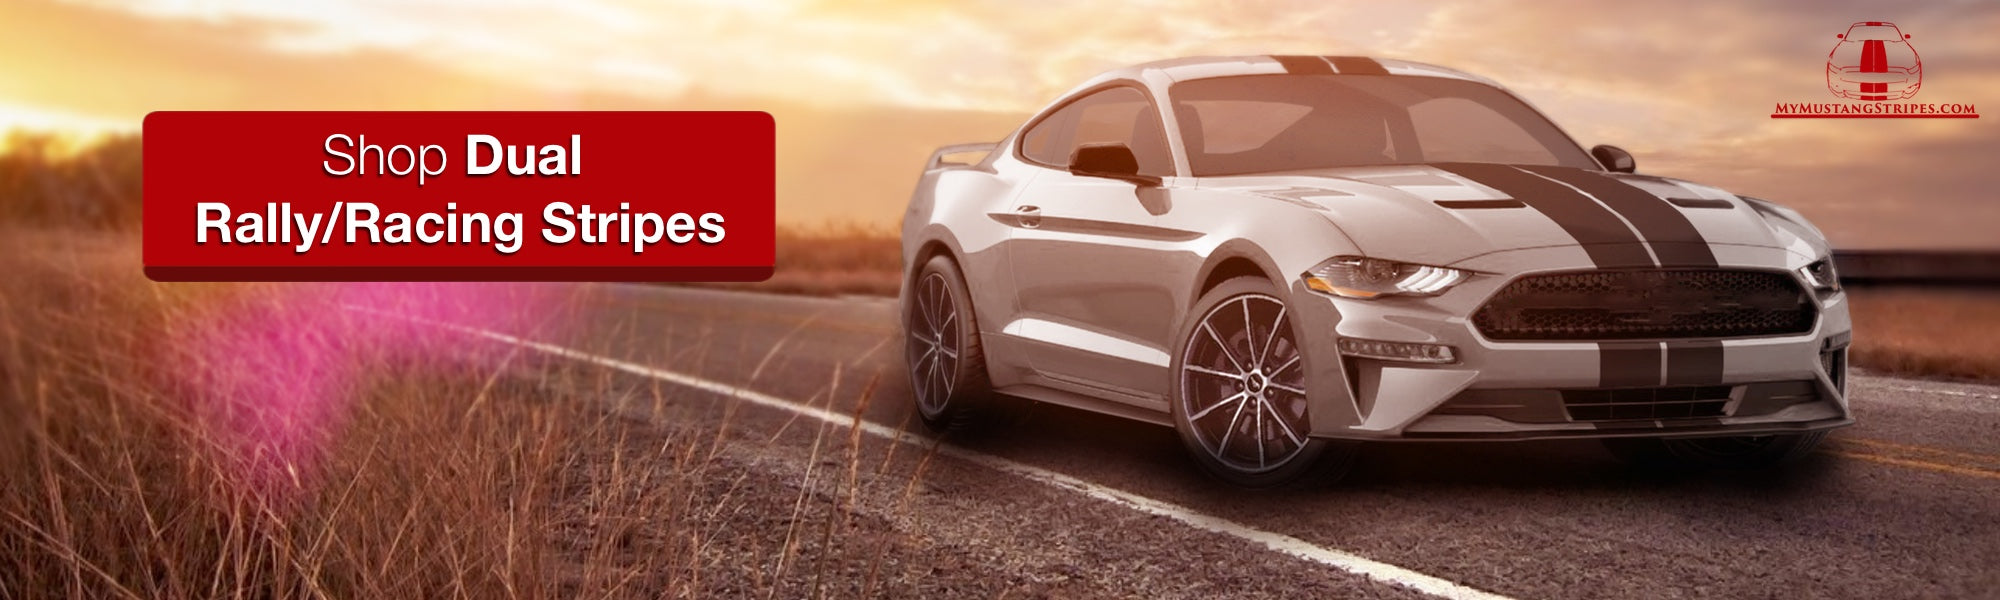 Grey mustang product photo matte black dual racing rally stripes lemans style